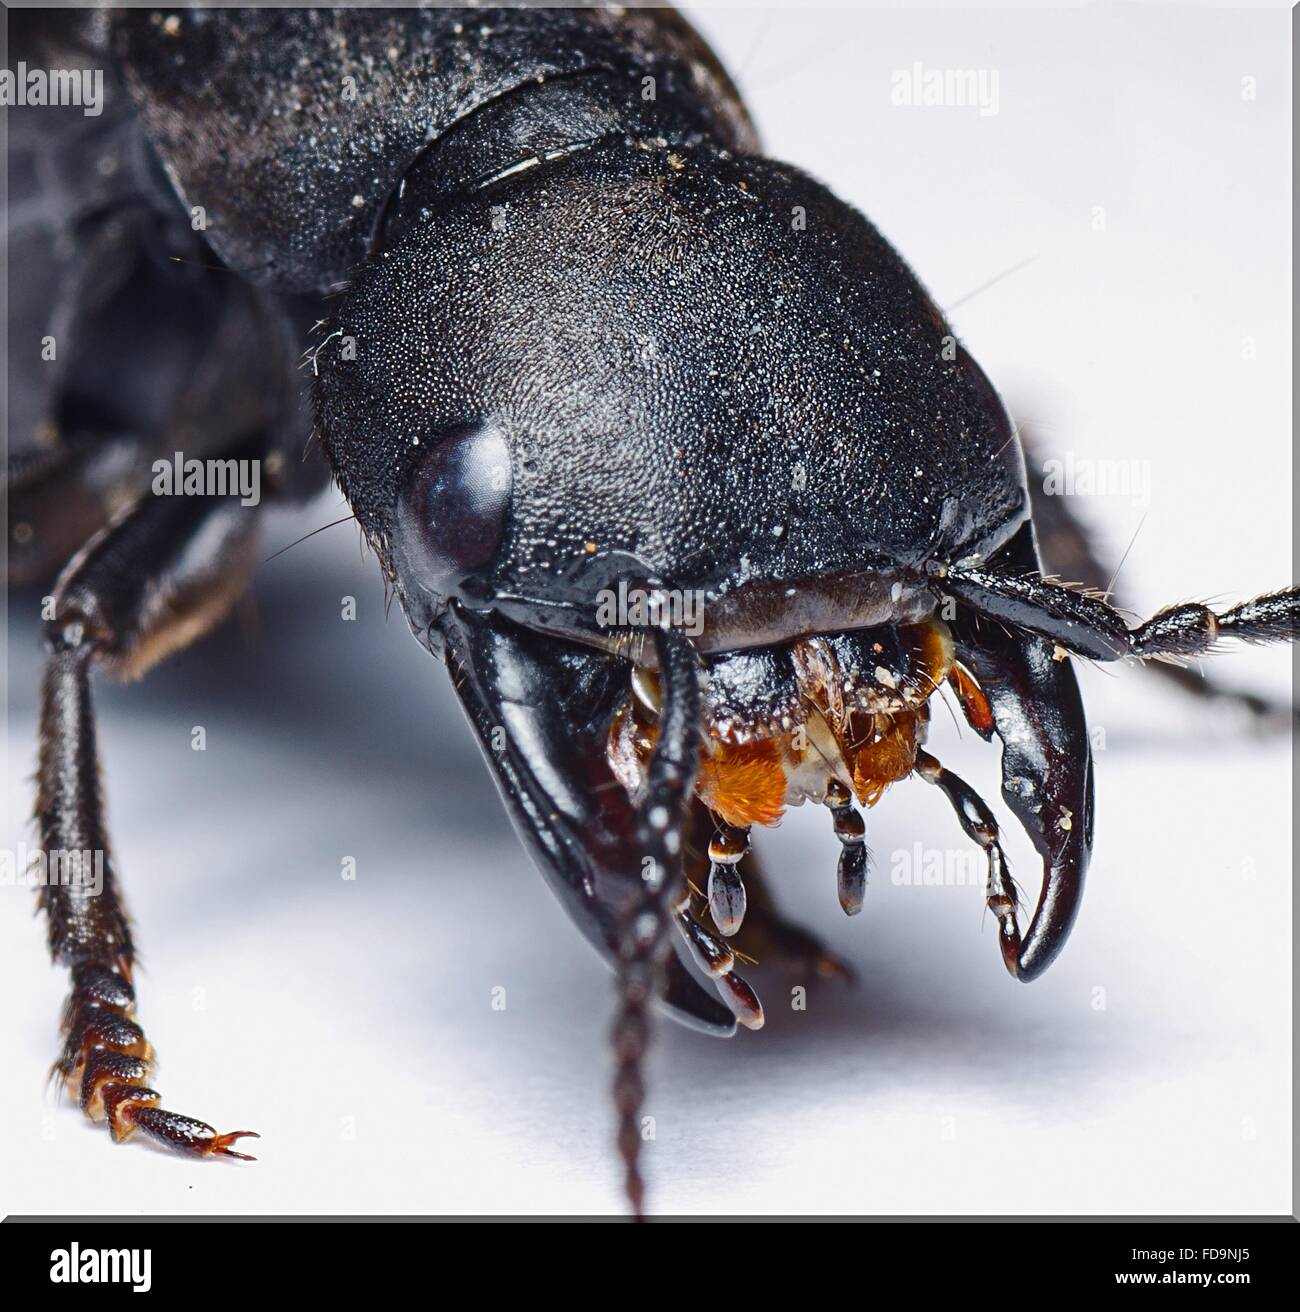 High Angle View Of Black Insect On White Table - Stock Image